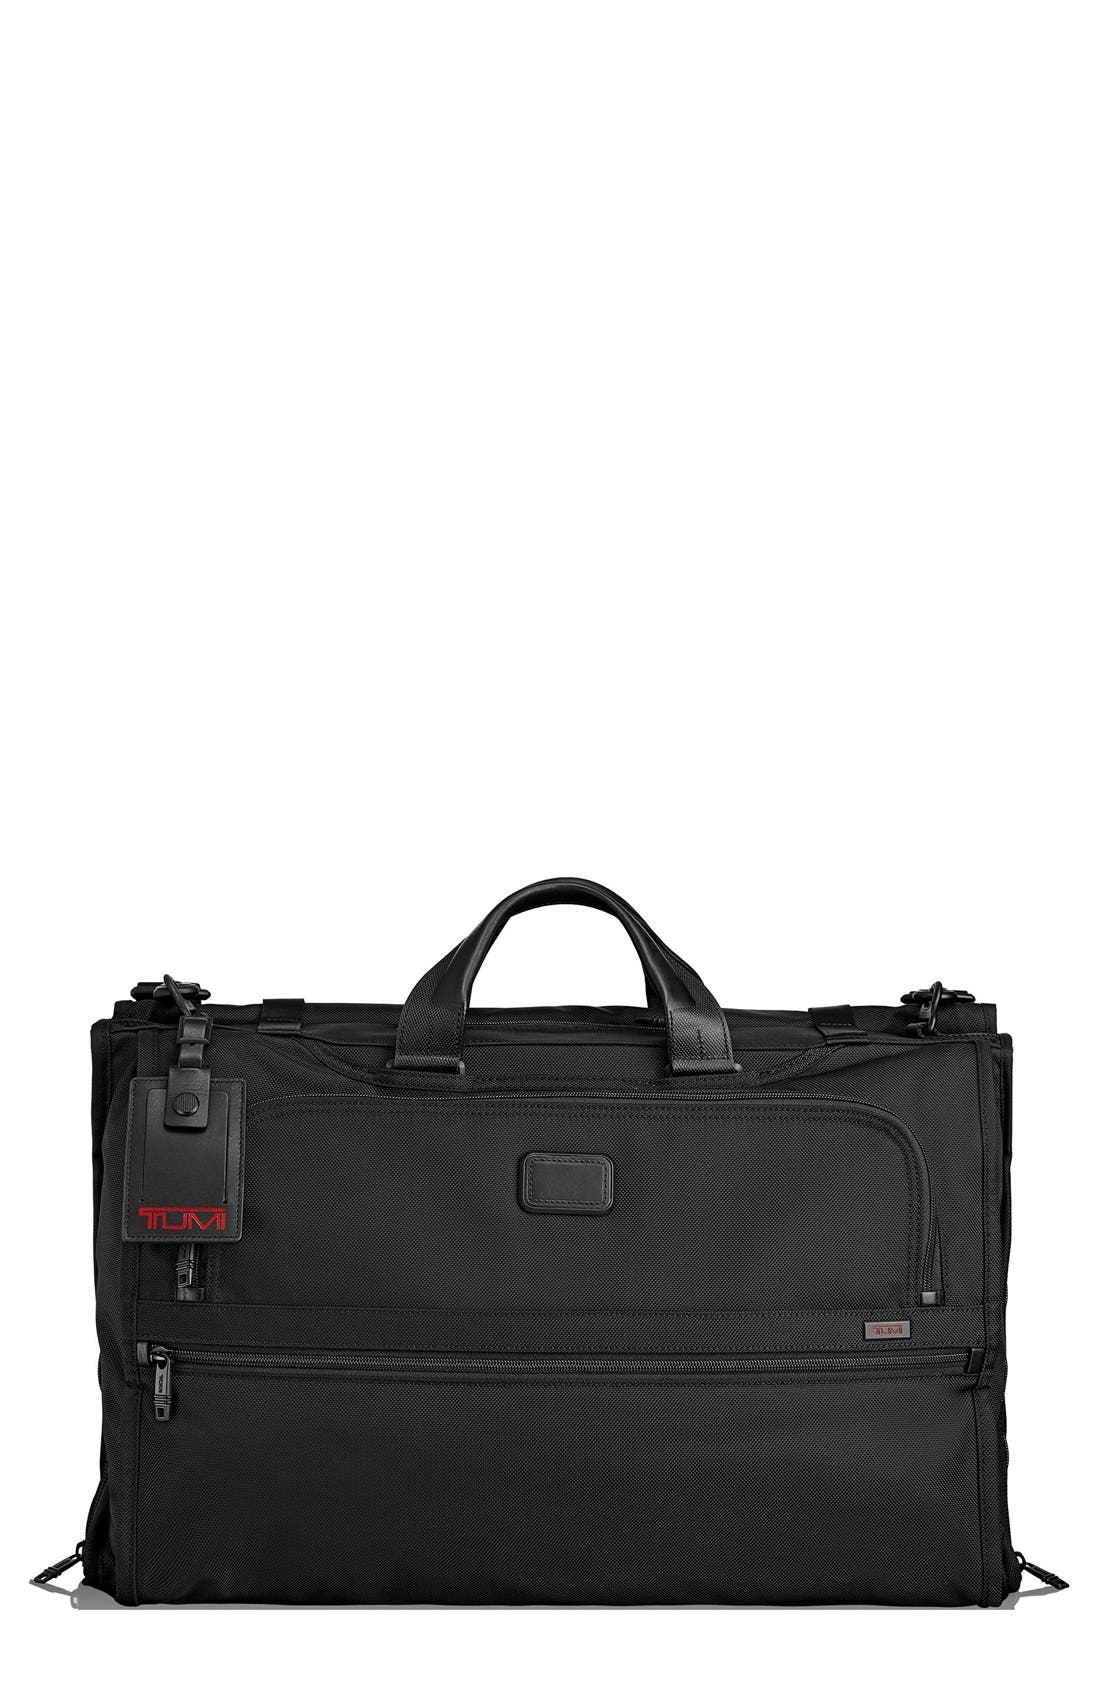 Alpha 2 22-Inch Trifold Carry-On Garment Bag,                             Main thumbnail 1, color,                             Black